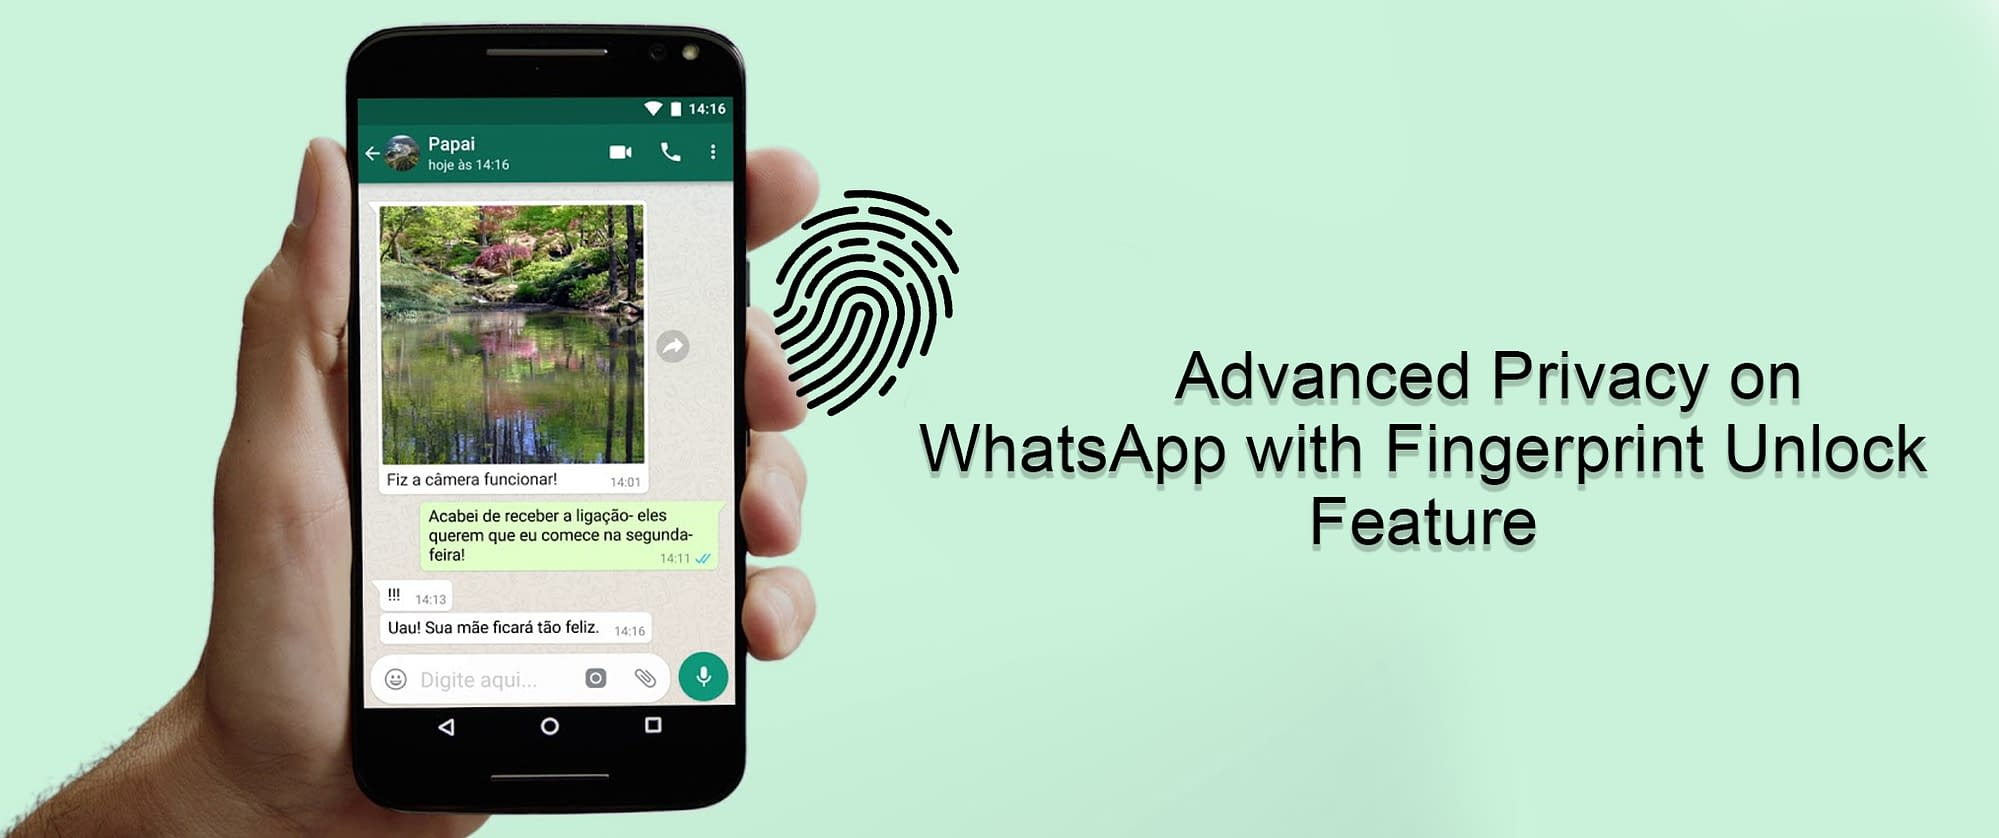 Advanced-Privacy-on-WhatsApp-with-Fingerprint-Unlock-Feature.